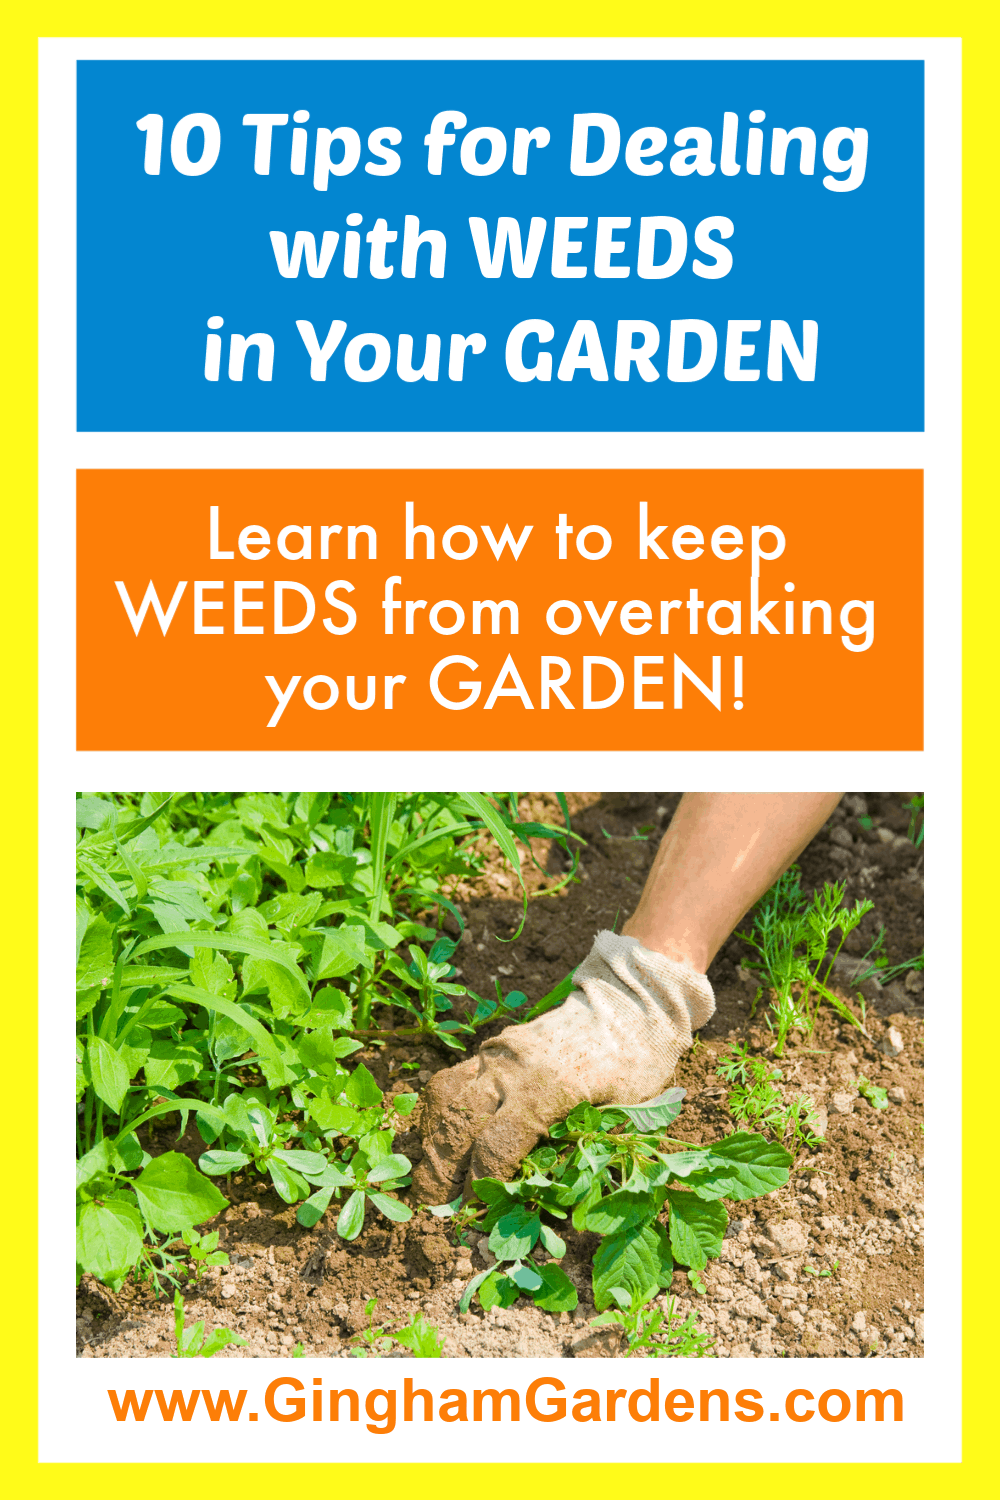 Image of gardener pulling weeds with text overlay - 10 tips for Dealing with Weeds in your garden